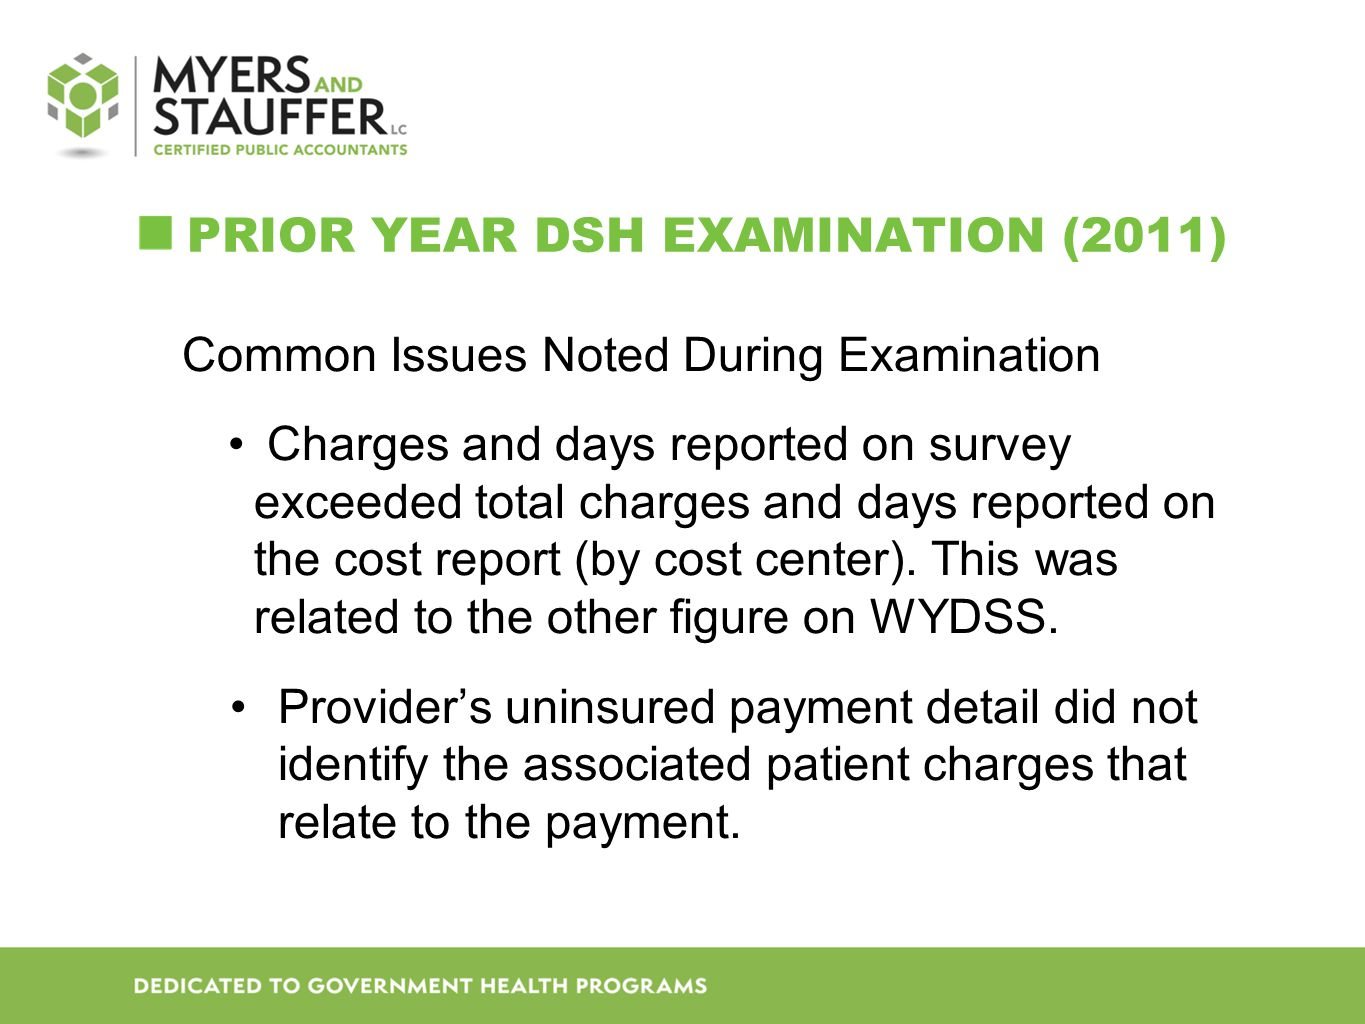 PRIOR YEAR DSH EXAMINATION (2011) Common Issues Noted During Examination Charges and days reported on survey exceeded total charges and days reported on the cost report (by cost center).